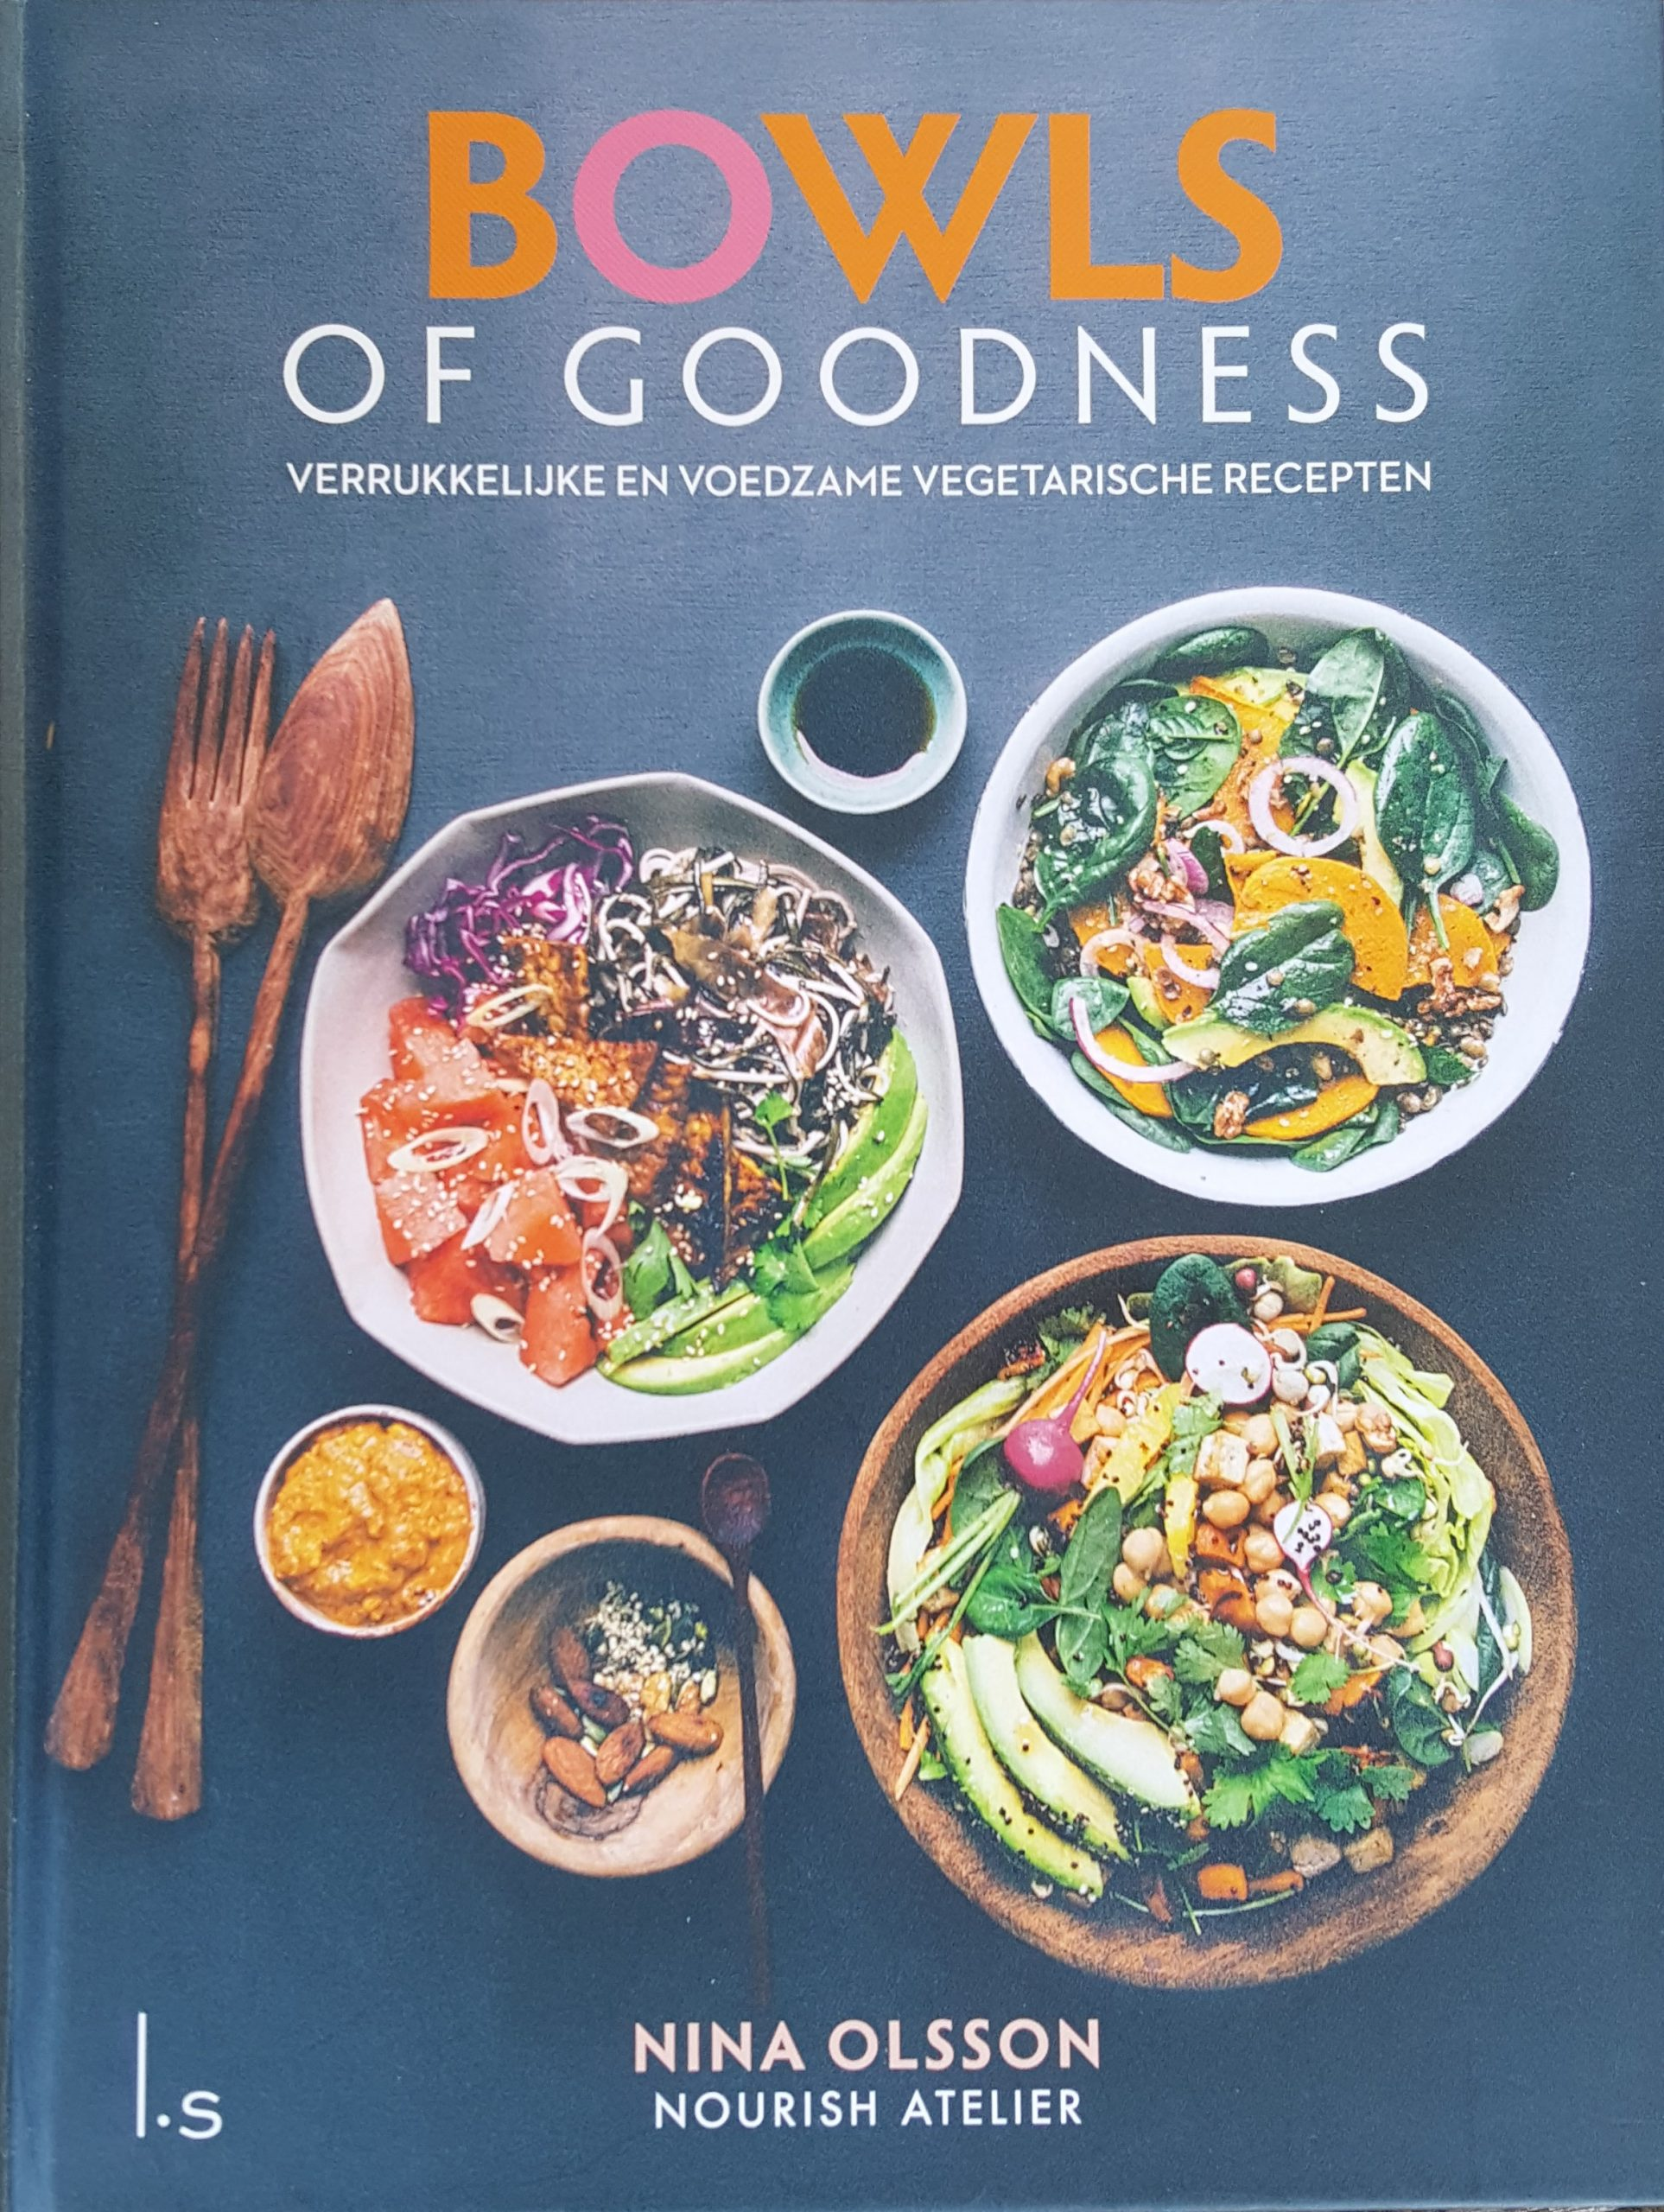 bowls of goodness 19,95